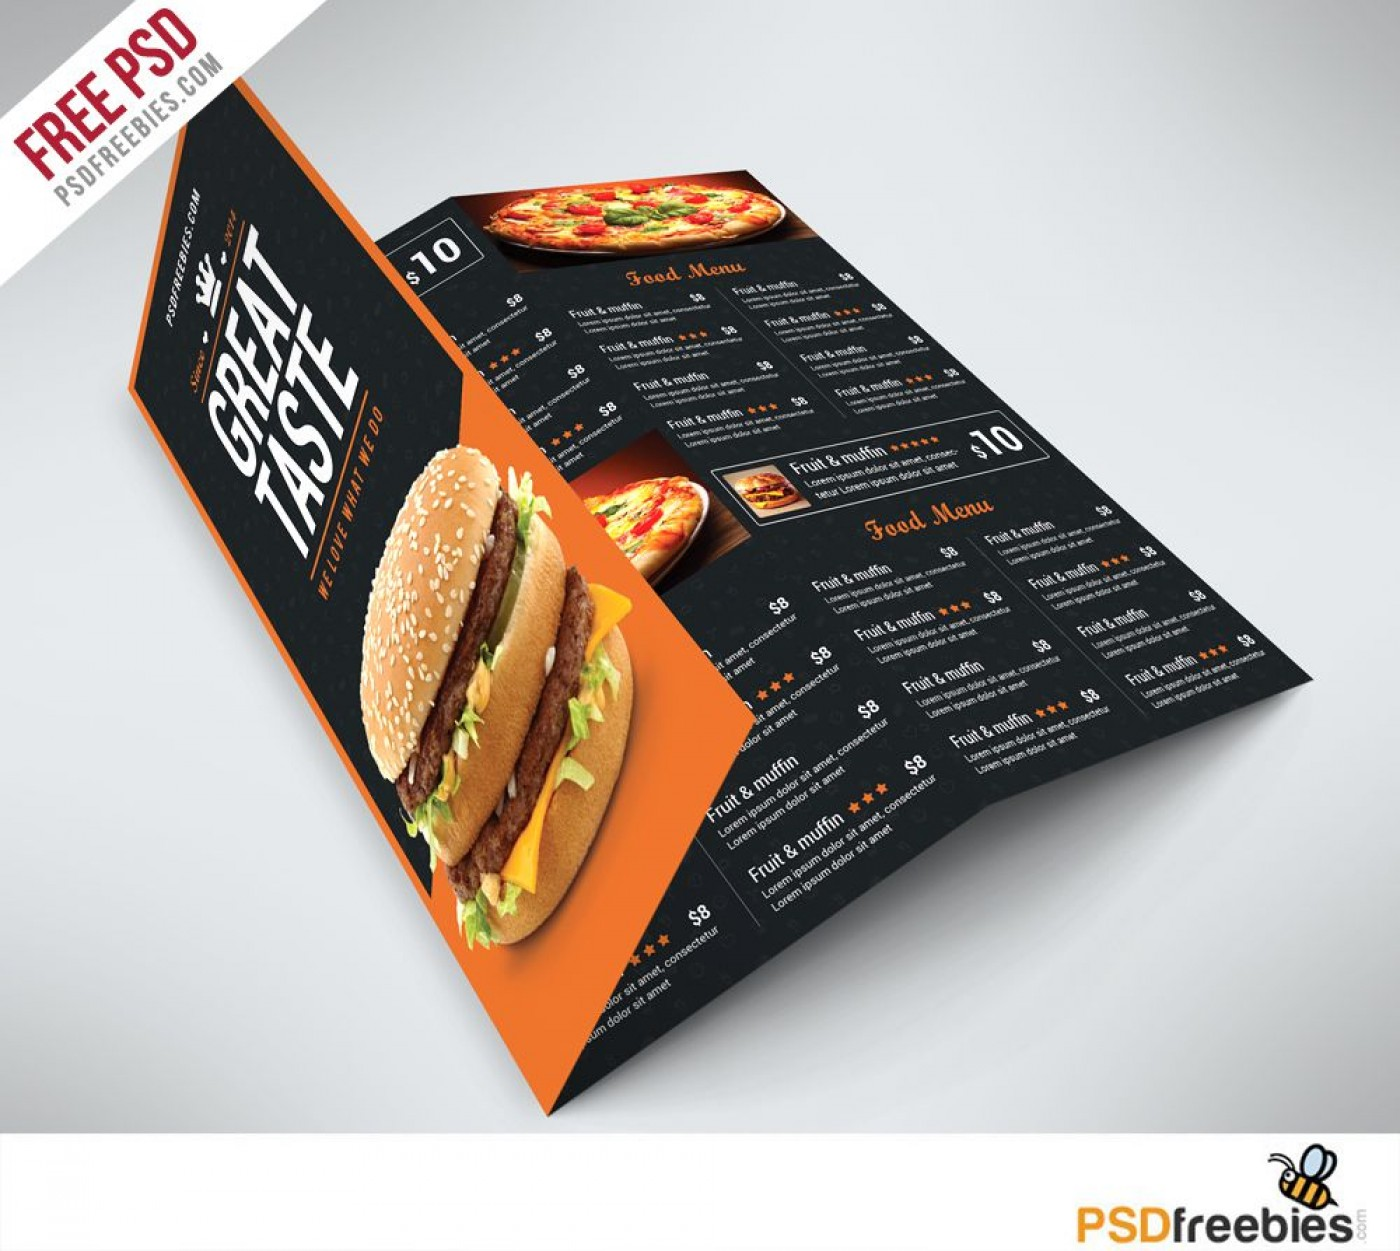 003 Unbelievable Tri Fold Menu Template Free Example  Tri-fold Restaurant Food Psd Wedding Brochure Cafe Download1400